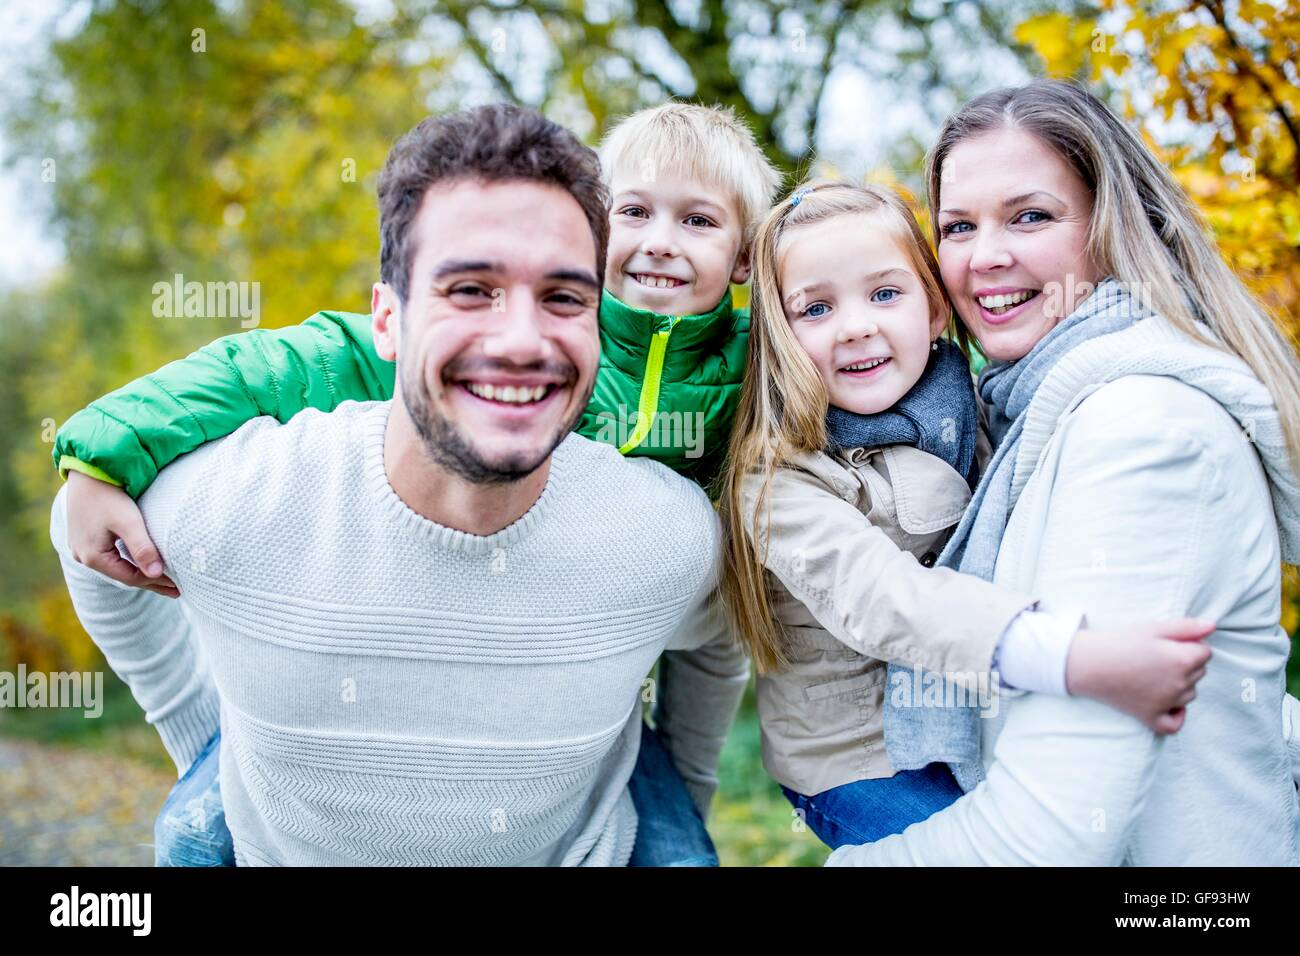 MODEL RELEASED. Parents carrying their children in autumn, portrait, smiling. - Stock Image